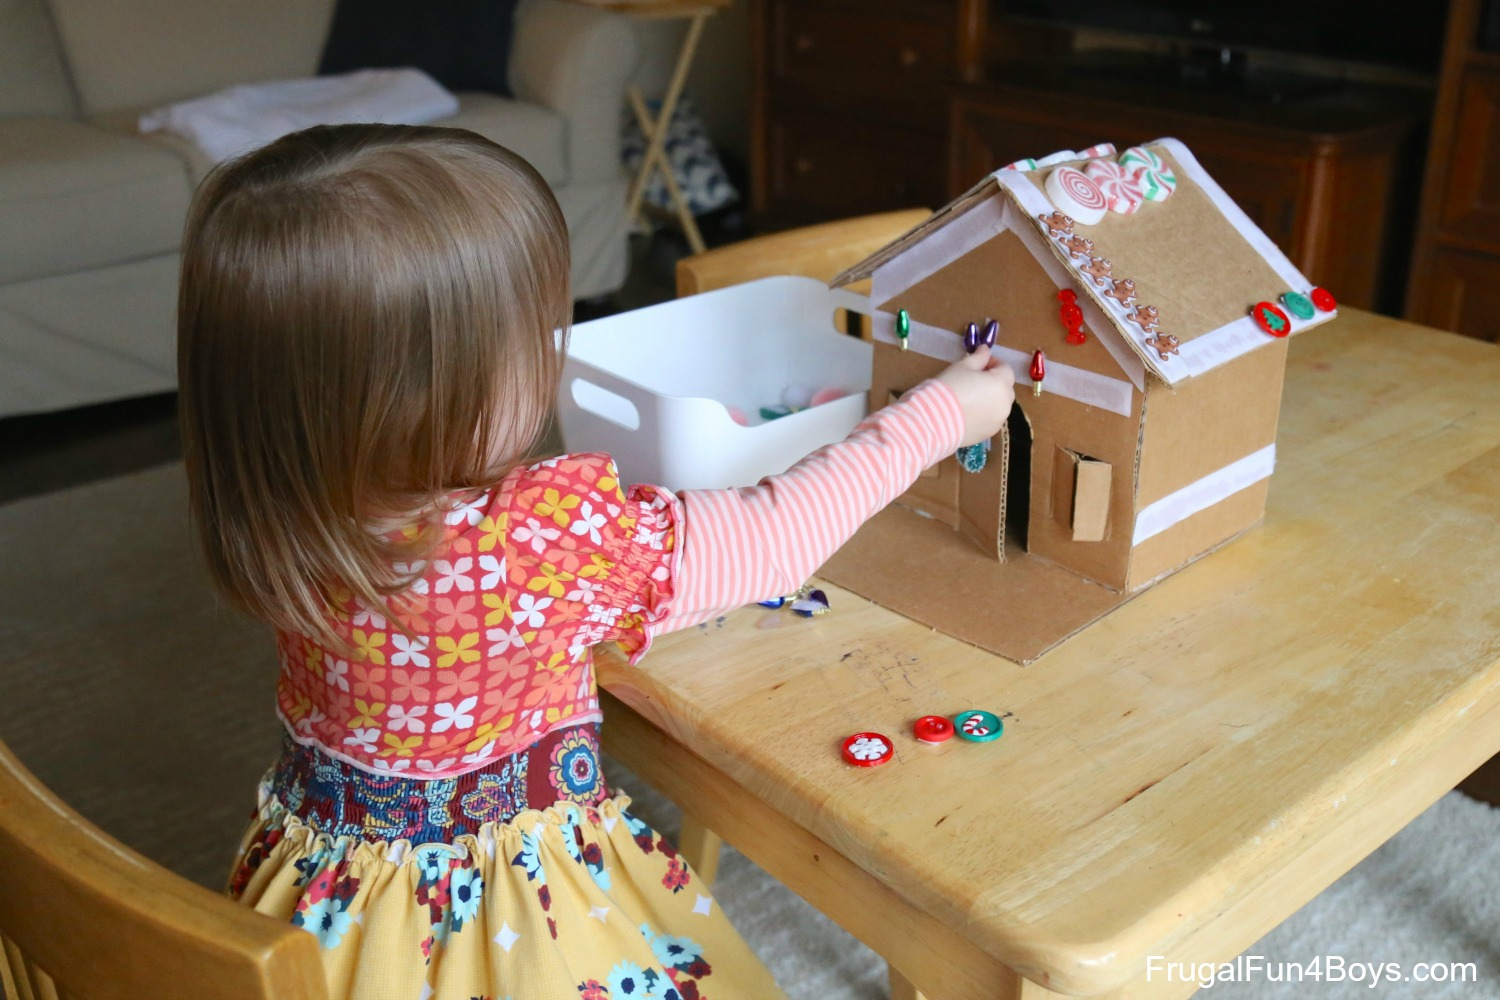 Decorate and Re-Decorate this Adorable Velcro Gingerbread House!